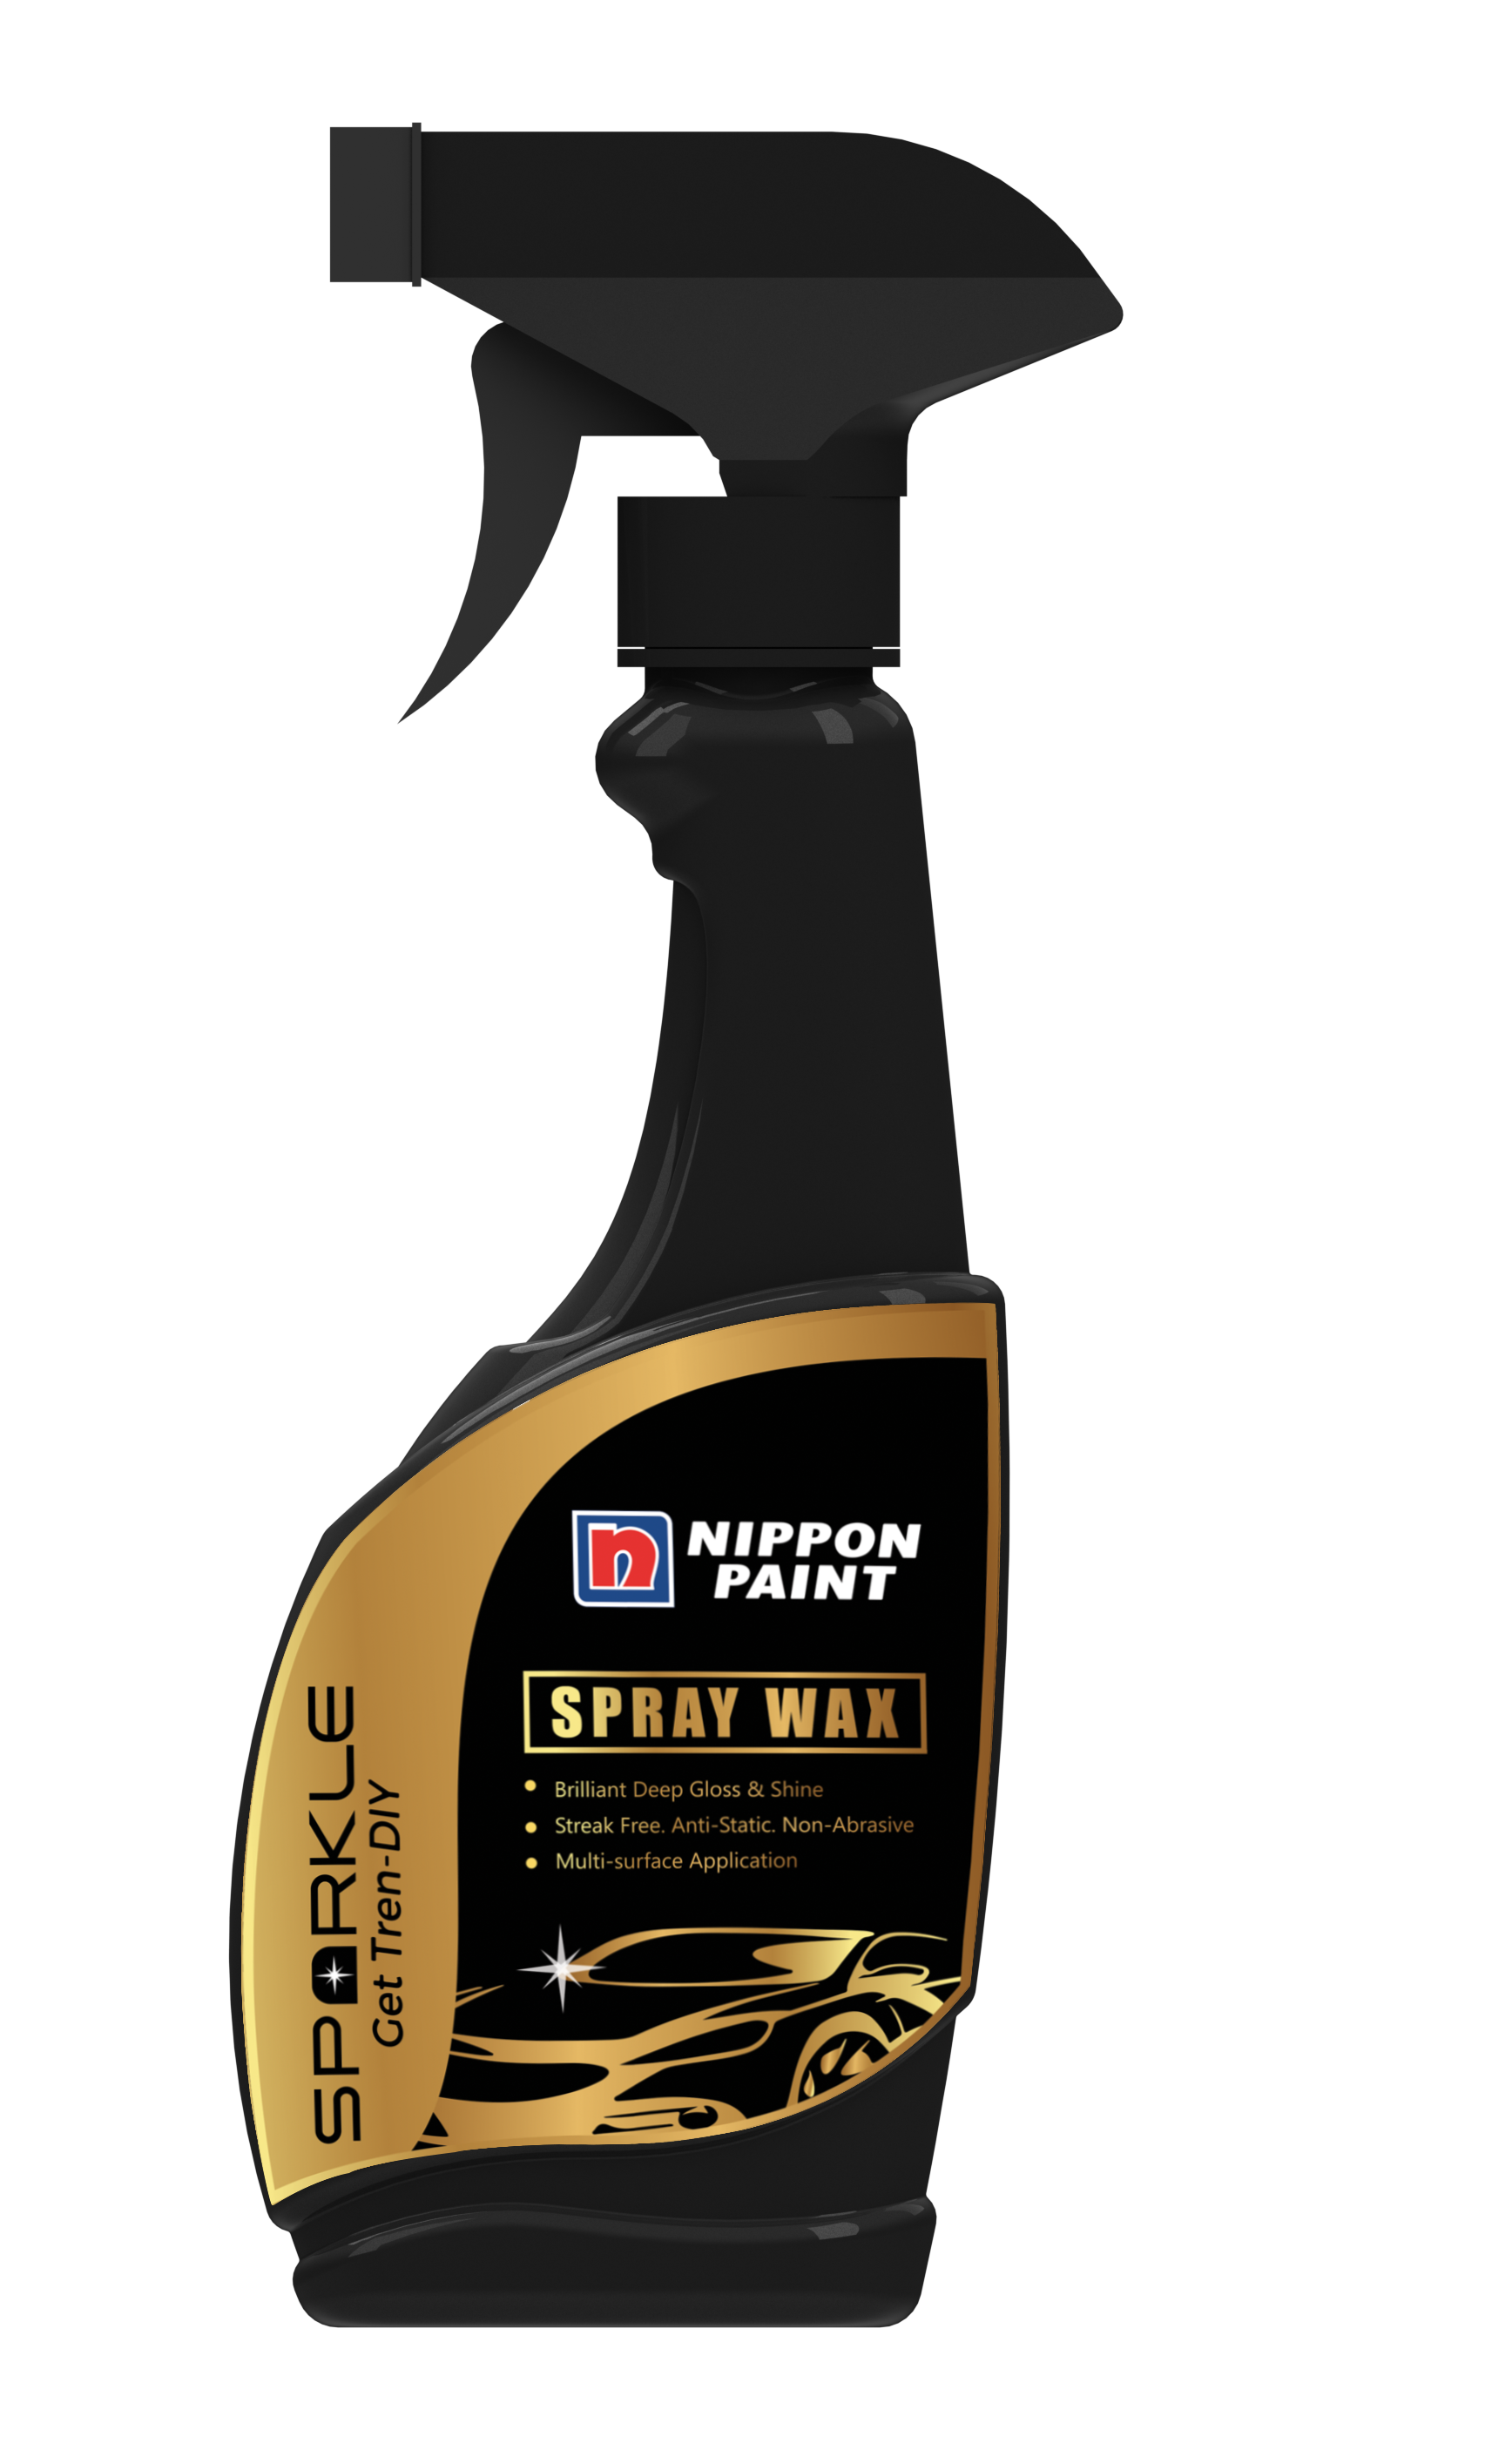 Premium Fast Spray Wax gives a high shine formula and is